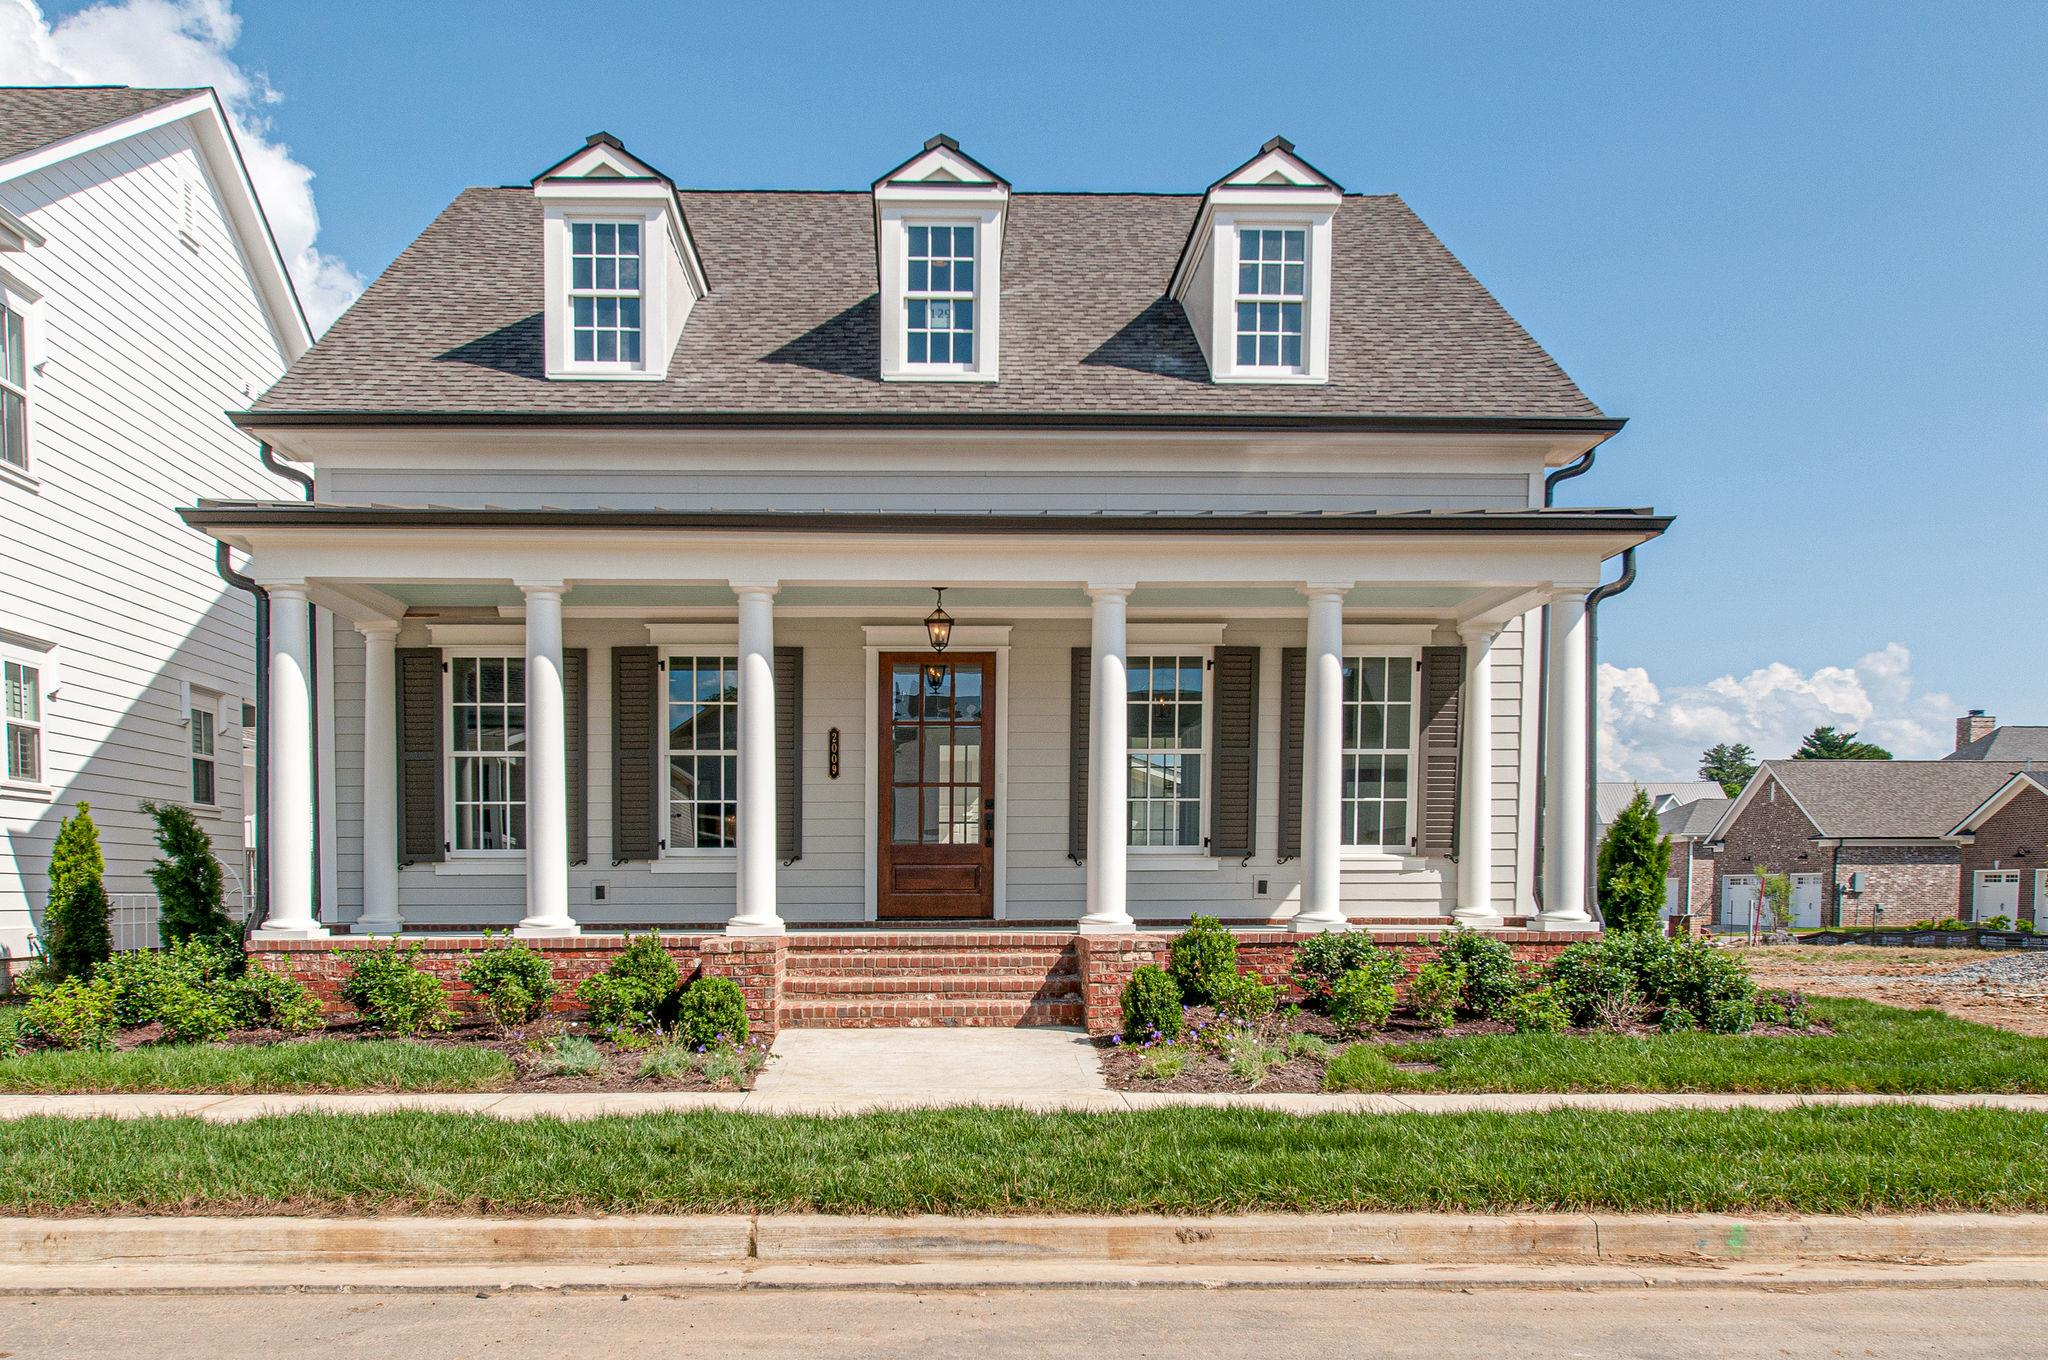 2009 Garfield Street- Lot 129, Bellevue in Williamson County County, TN 37221 Home for Sale